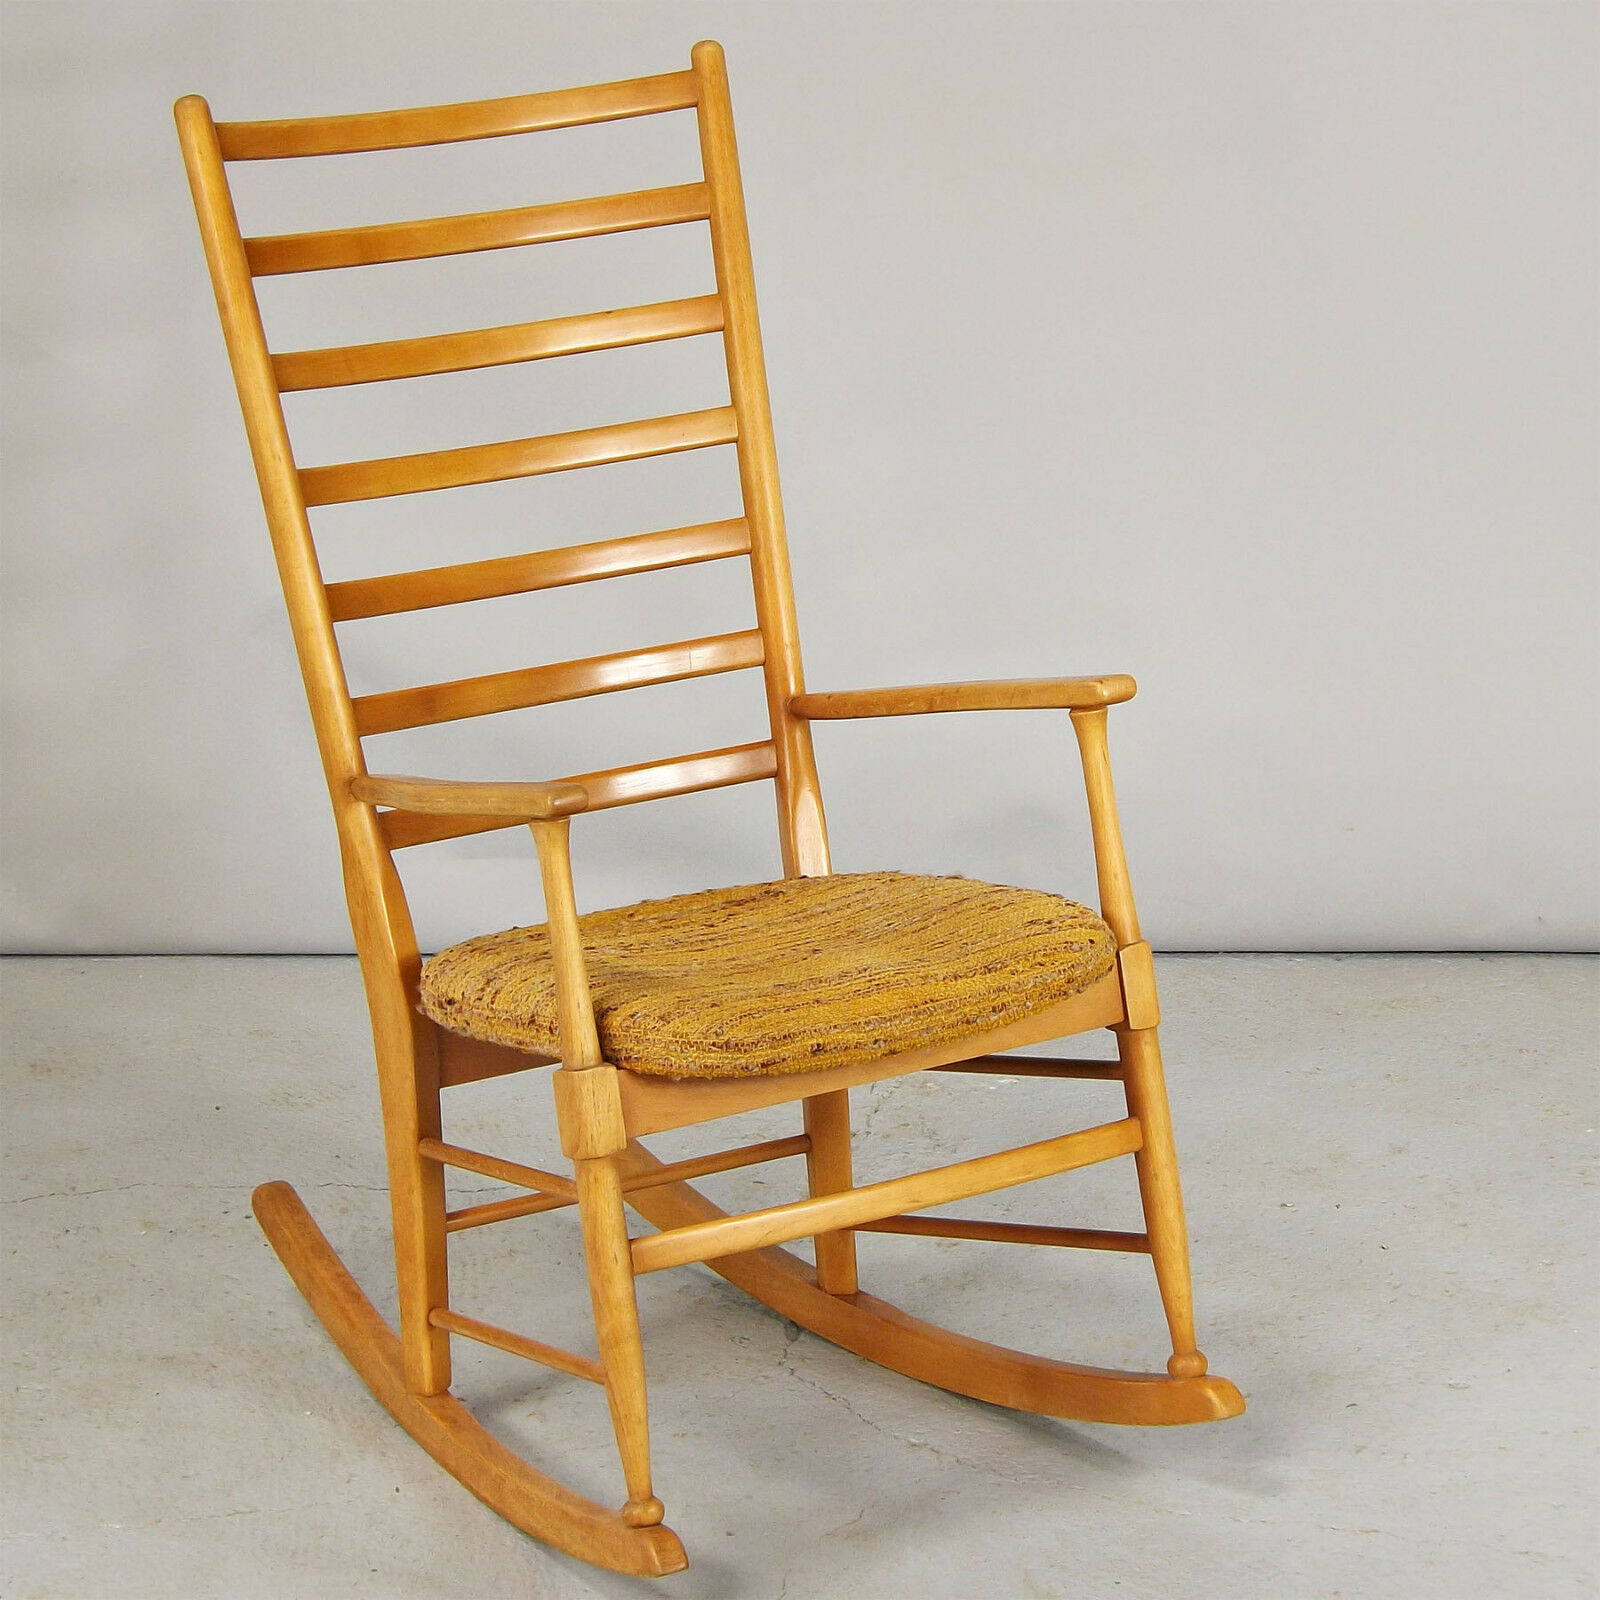 Rocking Chair - Scandinavian, Retro, 1960s, Solid Beech (delivery available)